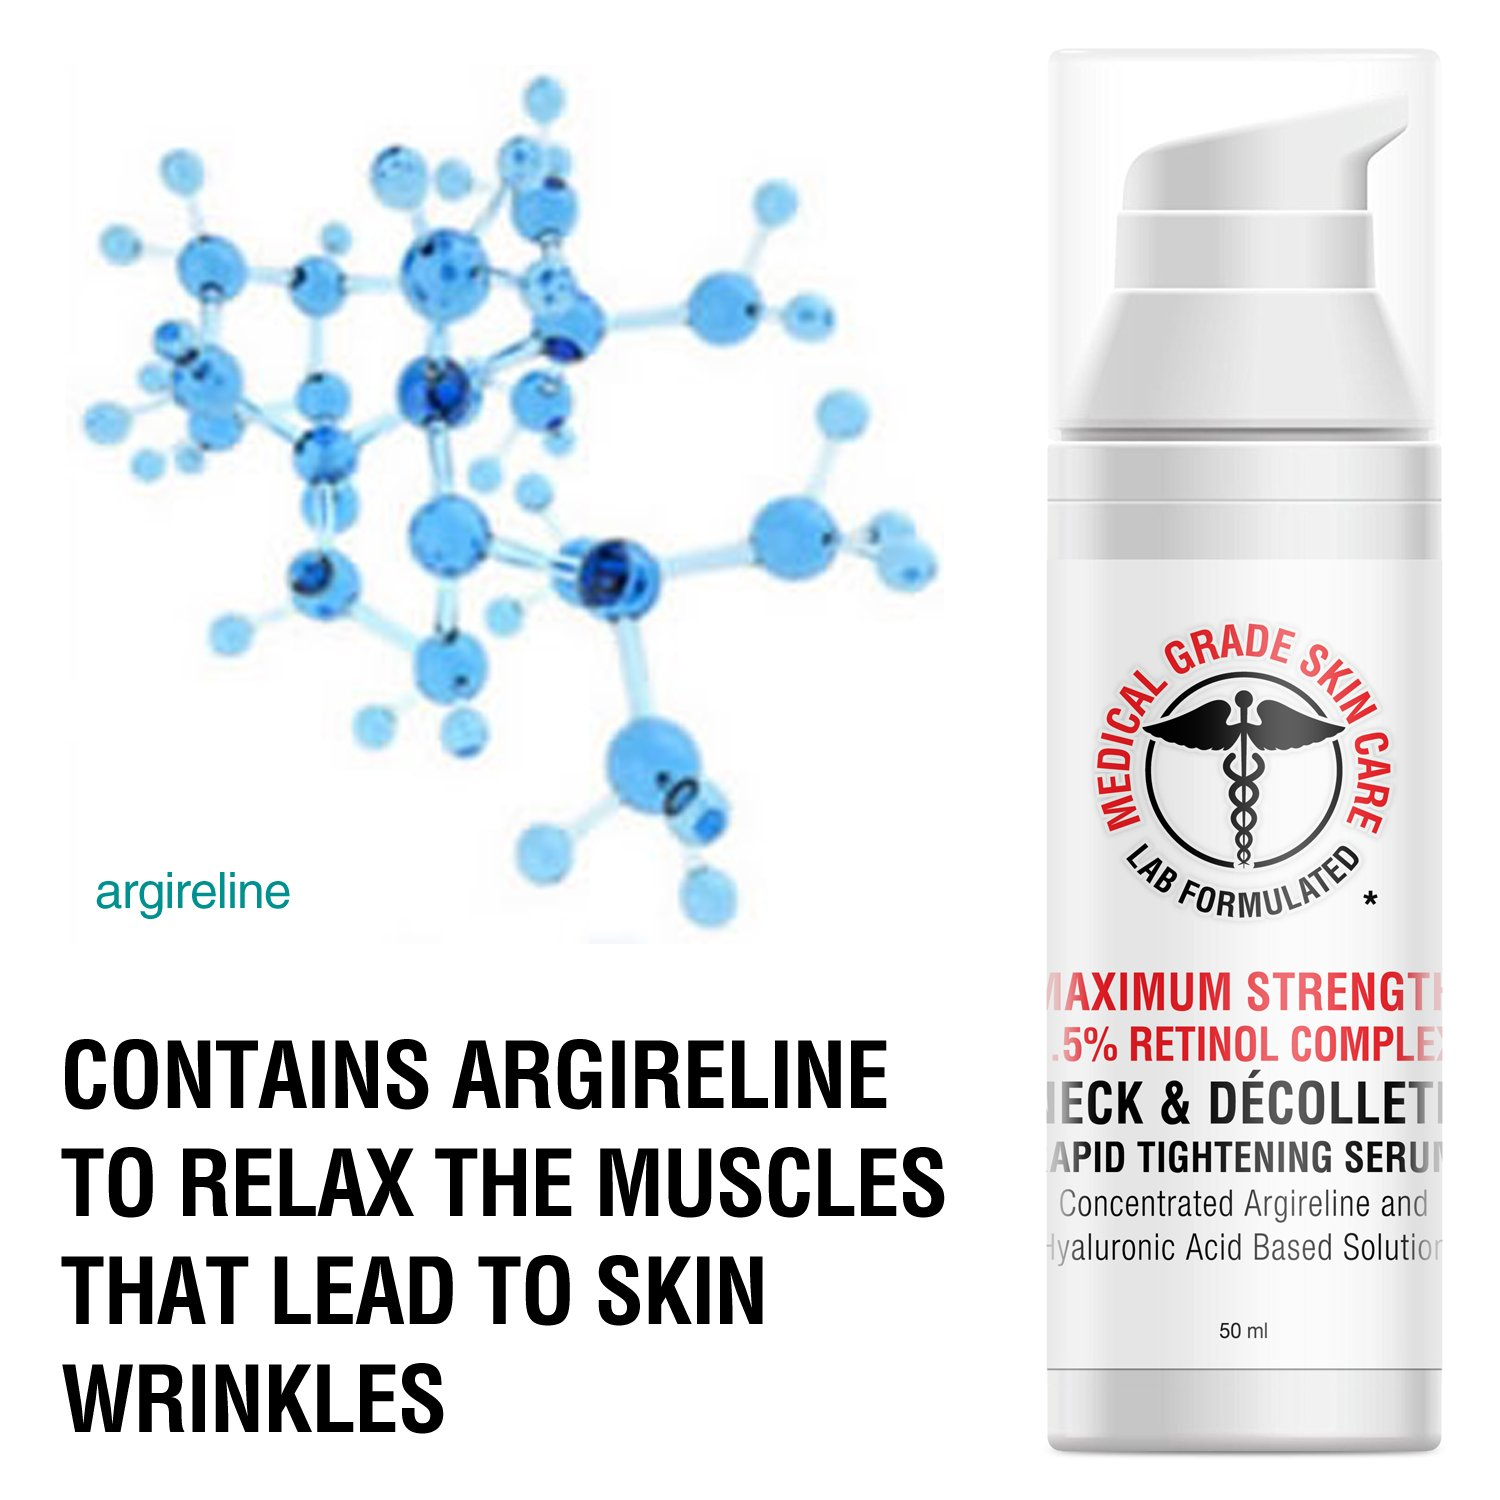 Neck & Décolleté Tightening Serum   Best Anti-Aging Firming Neck Cream Made With Maximum Strength 2.5% Retinol Complex   Concentrated With Argireline and Hyaluronic Acid by SkinPro (Image #4)